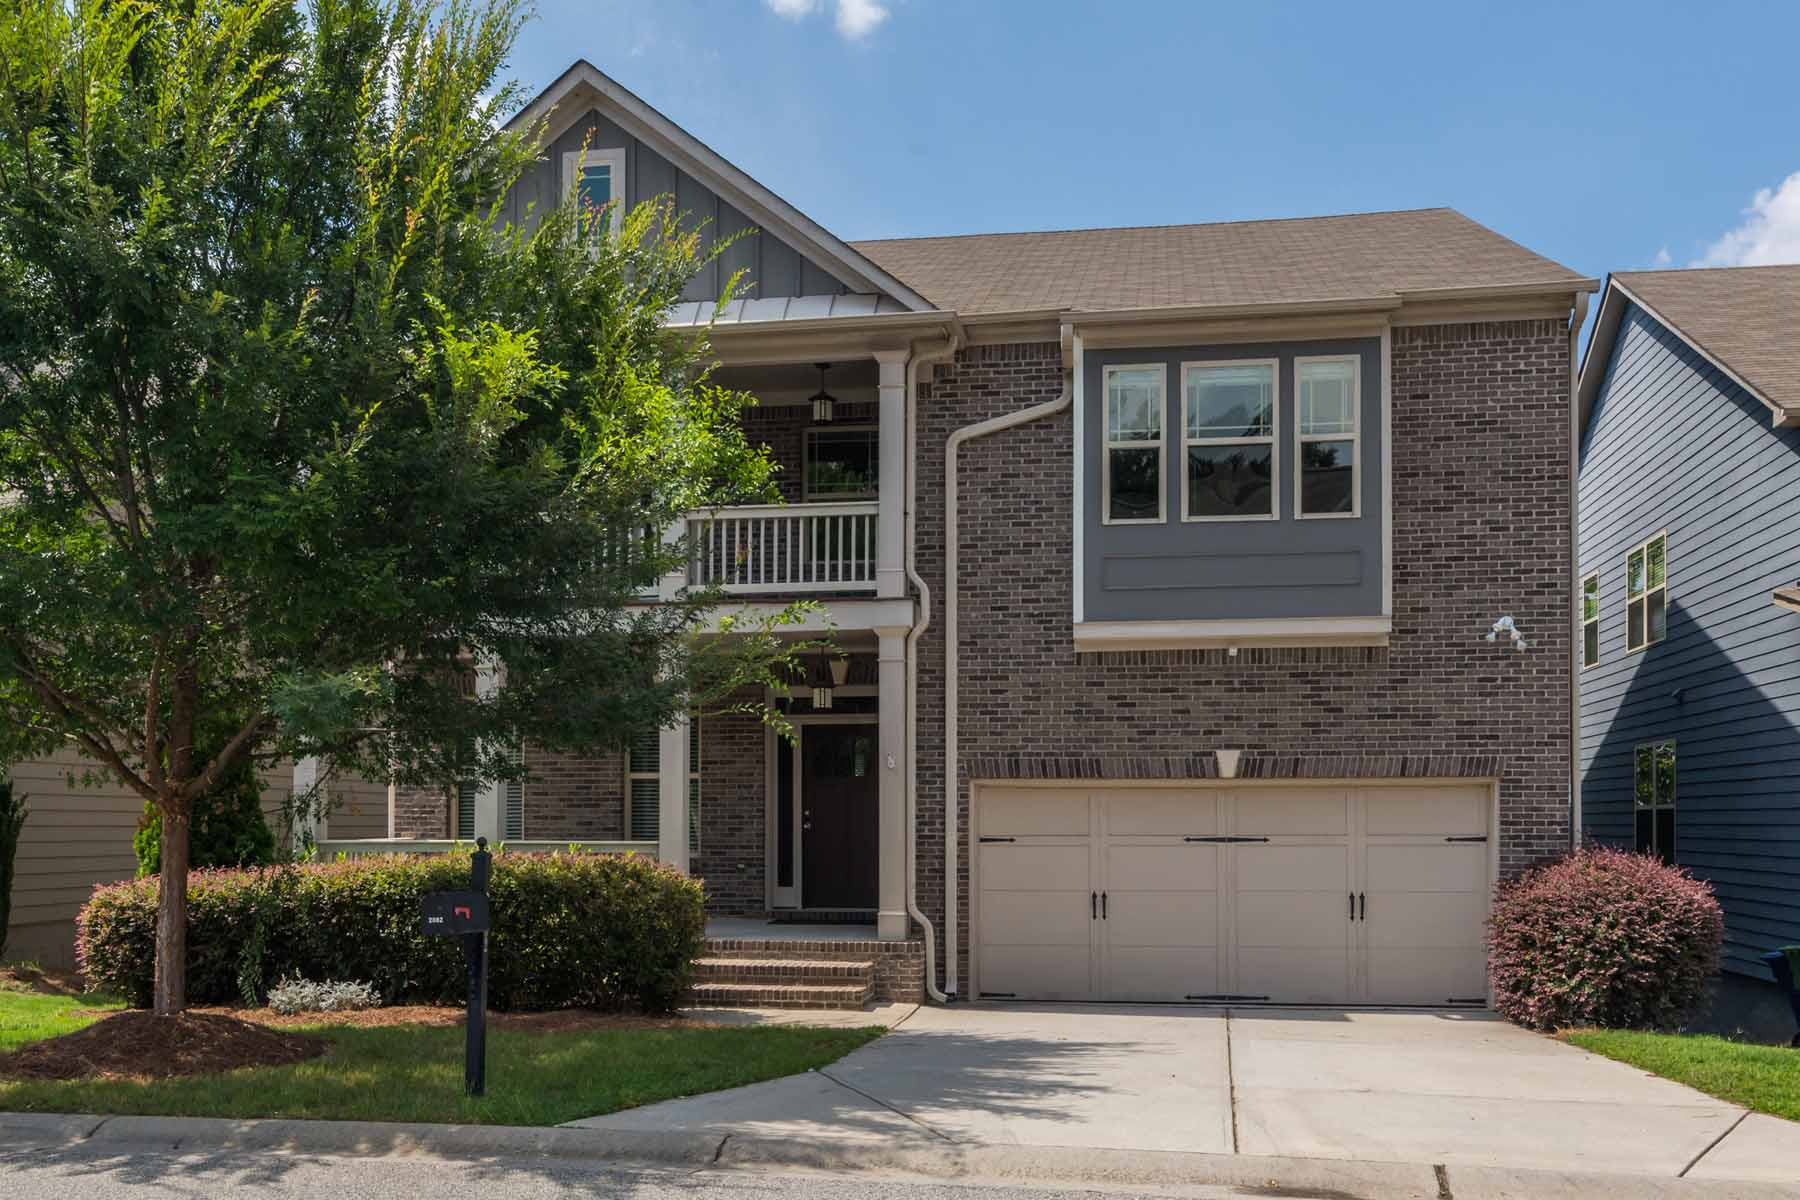 Single Family Home for Sale at Vinings On The Chattahoochee 2082 Village Crest Drive Atlanta, Georgia 30318 United States